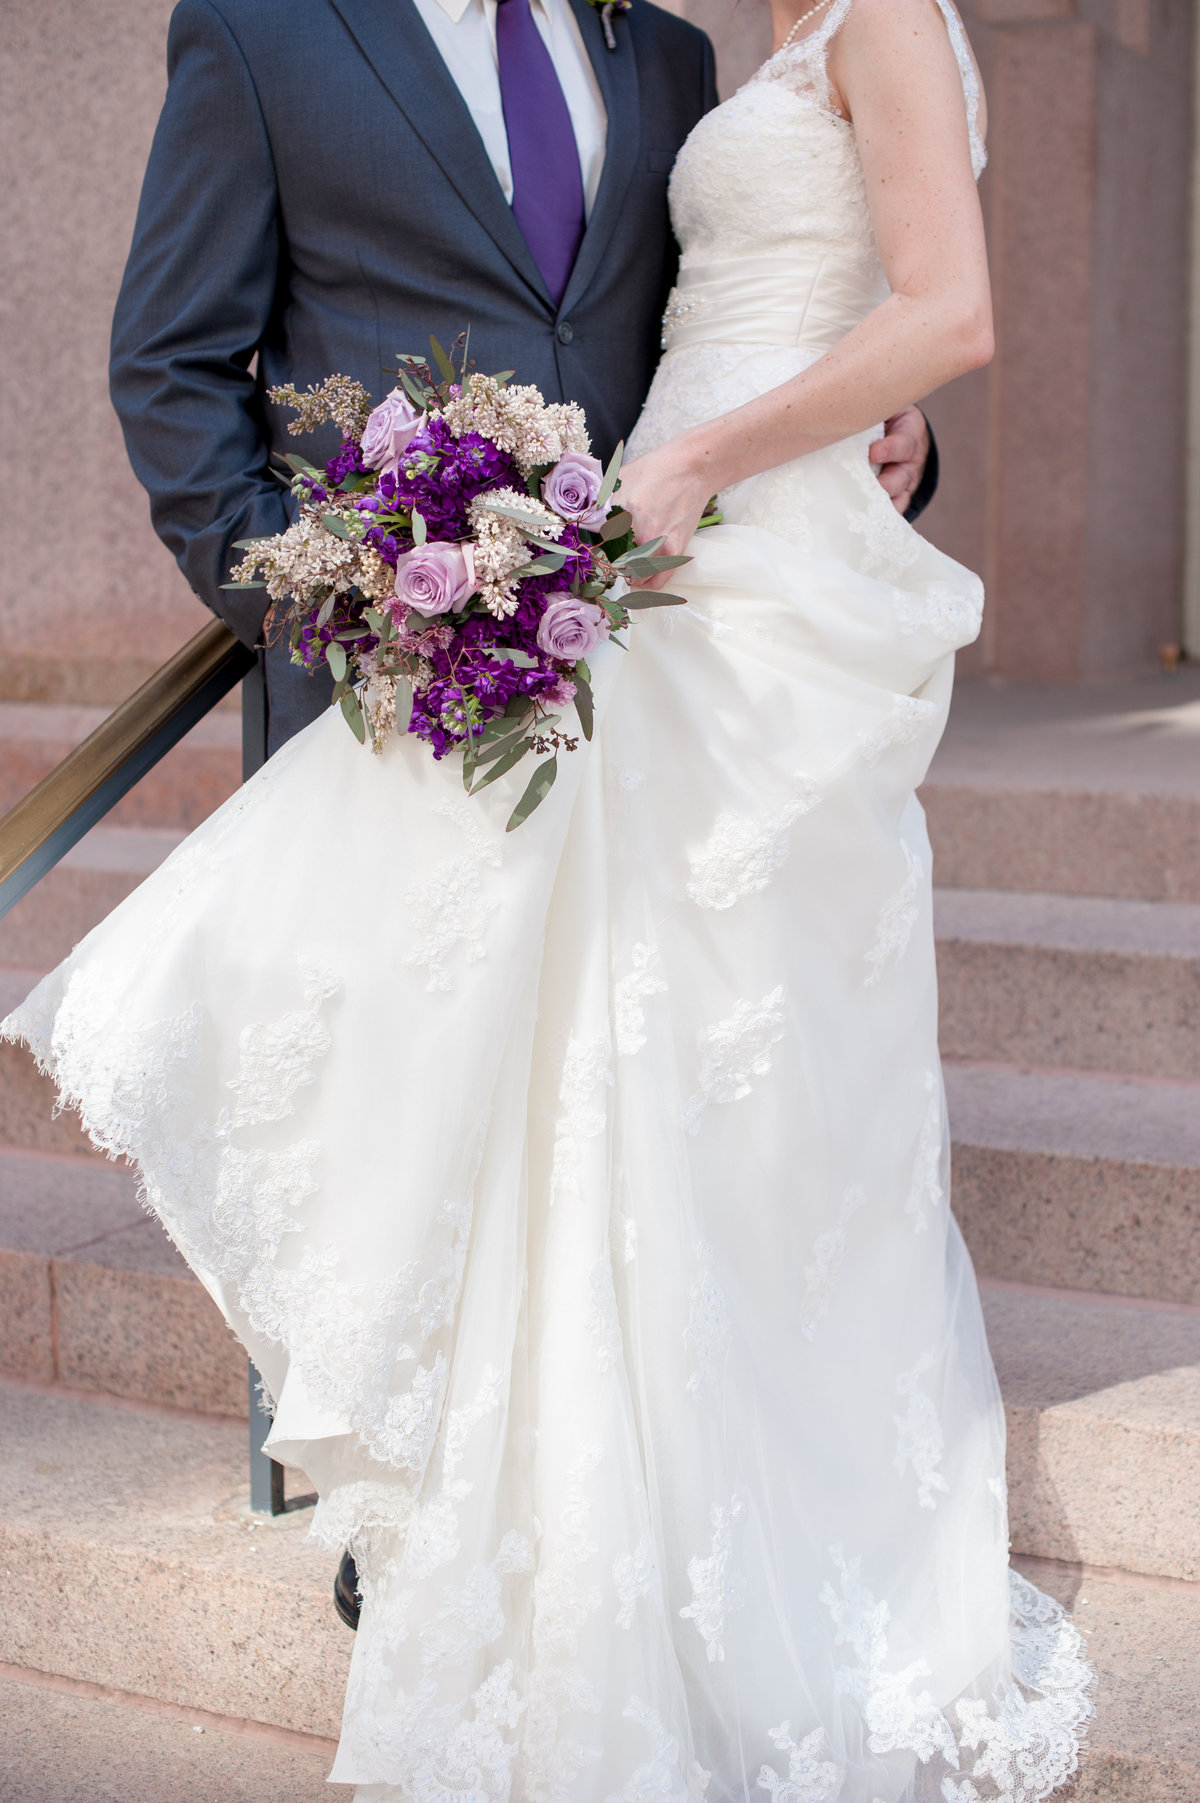 St Louis MO bride and groom with purple bouquet